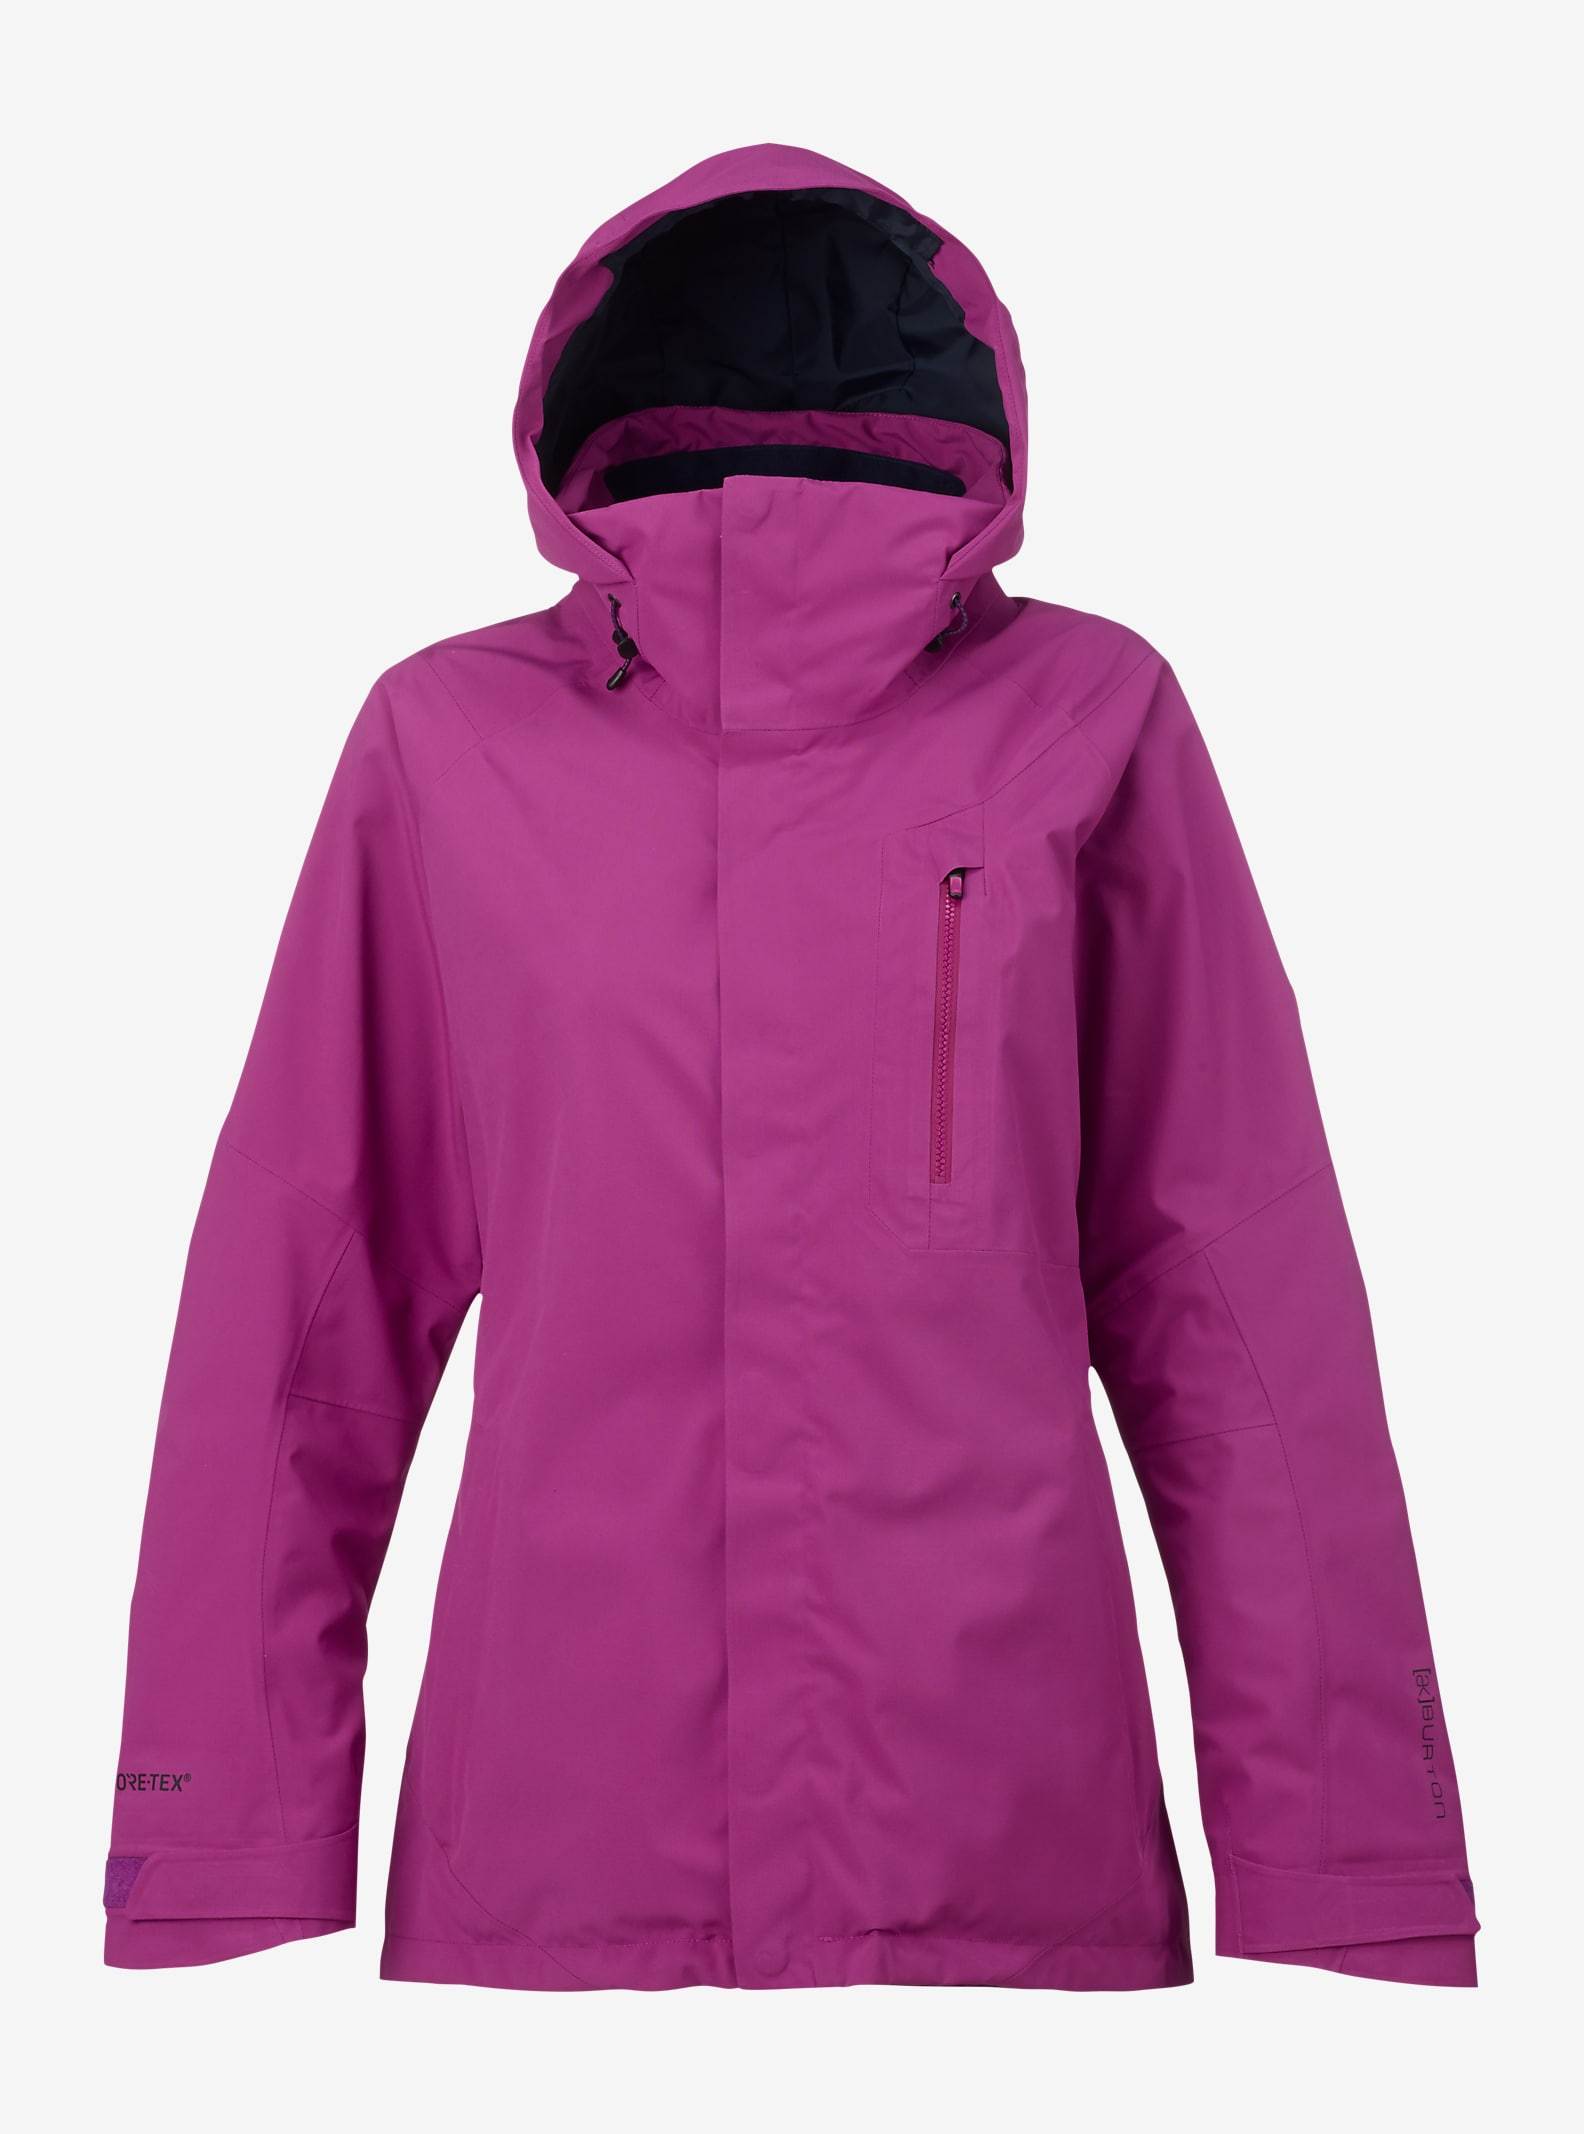 Burton [ak] 2L Flare Down Jacket shown in Grapeseed